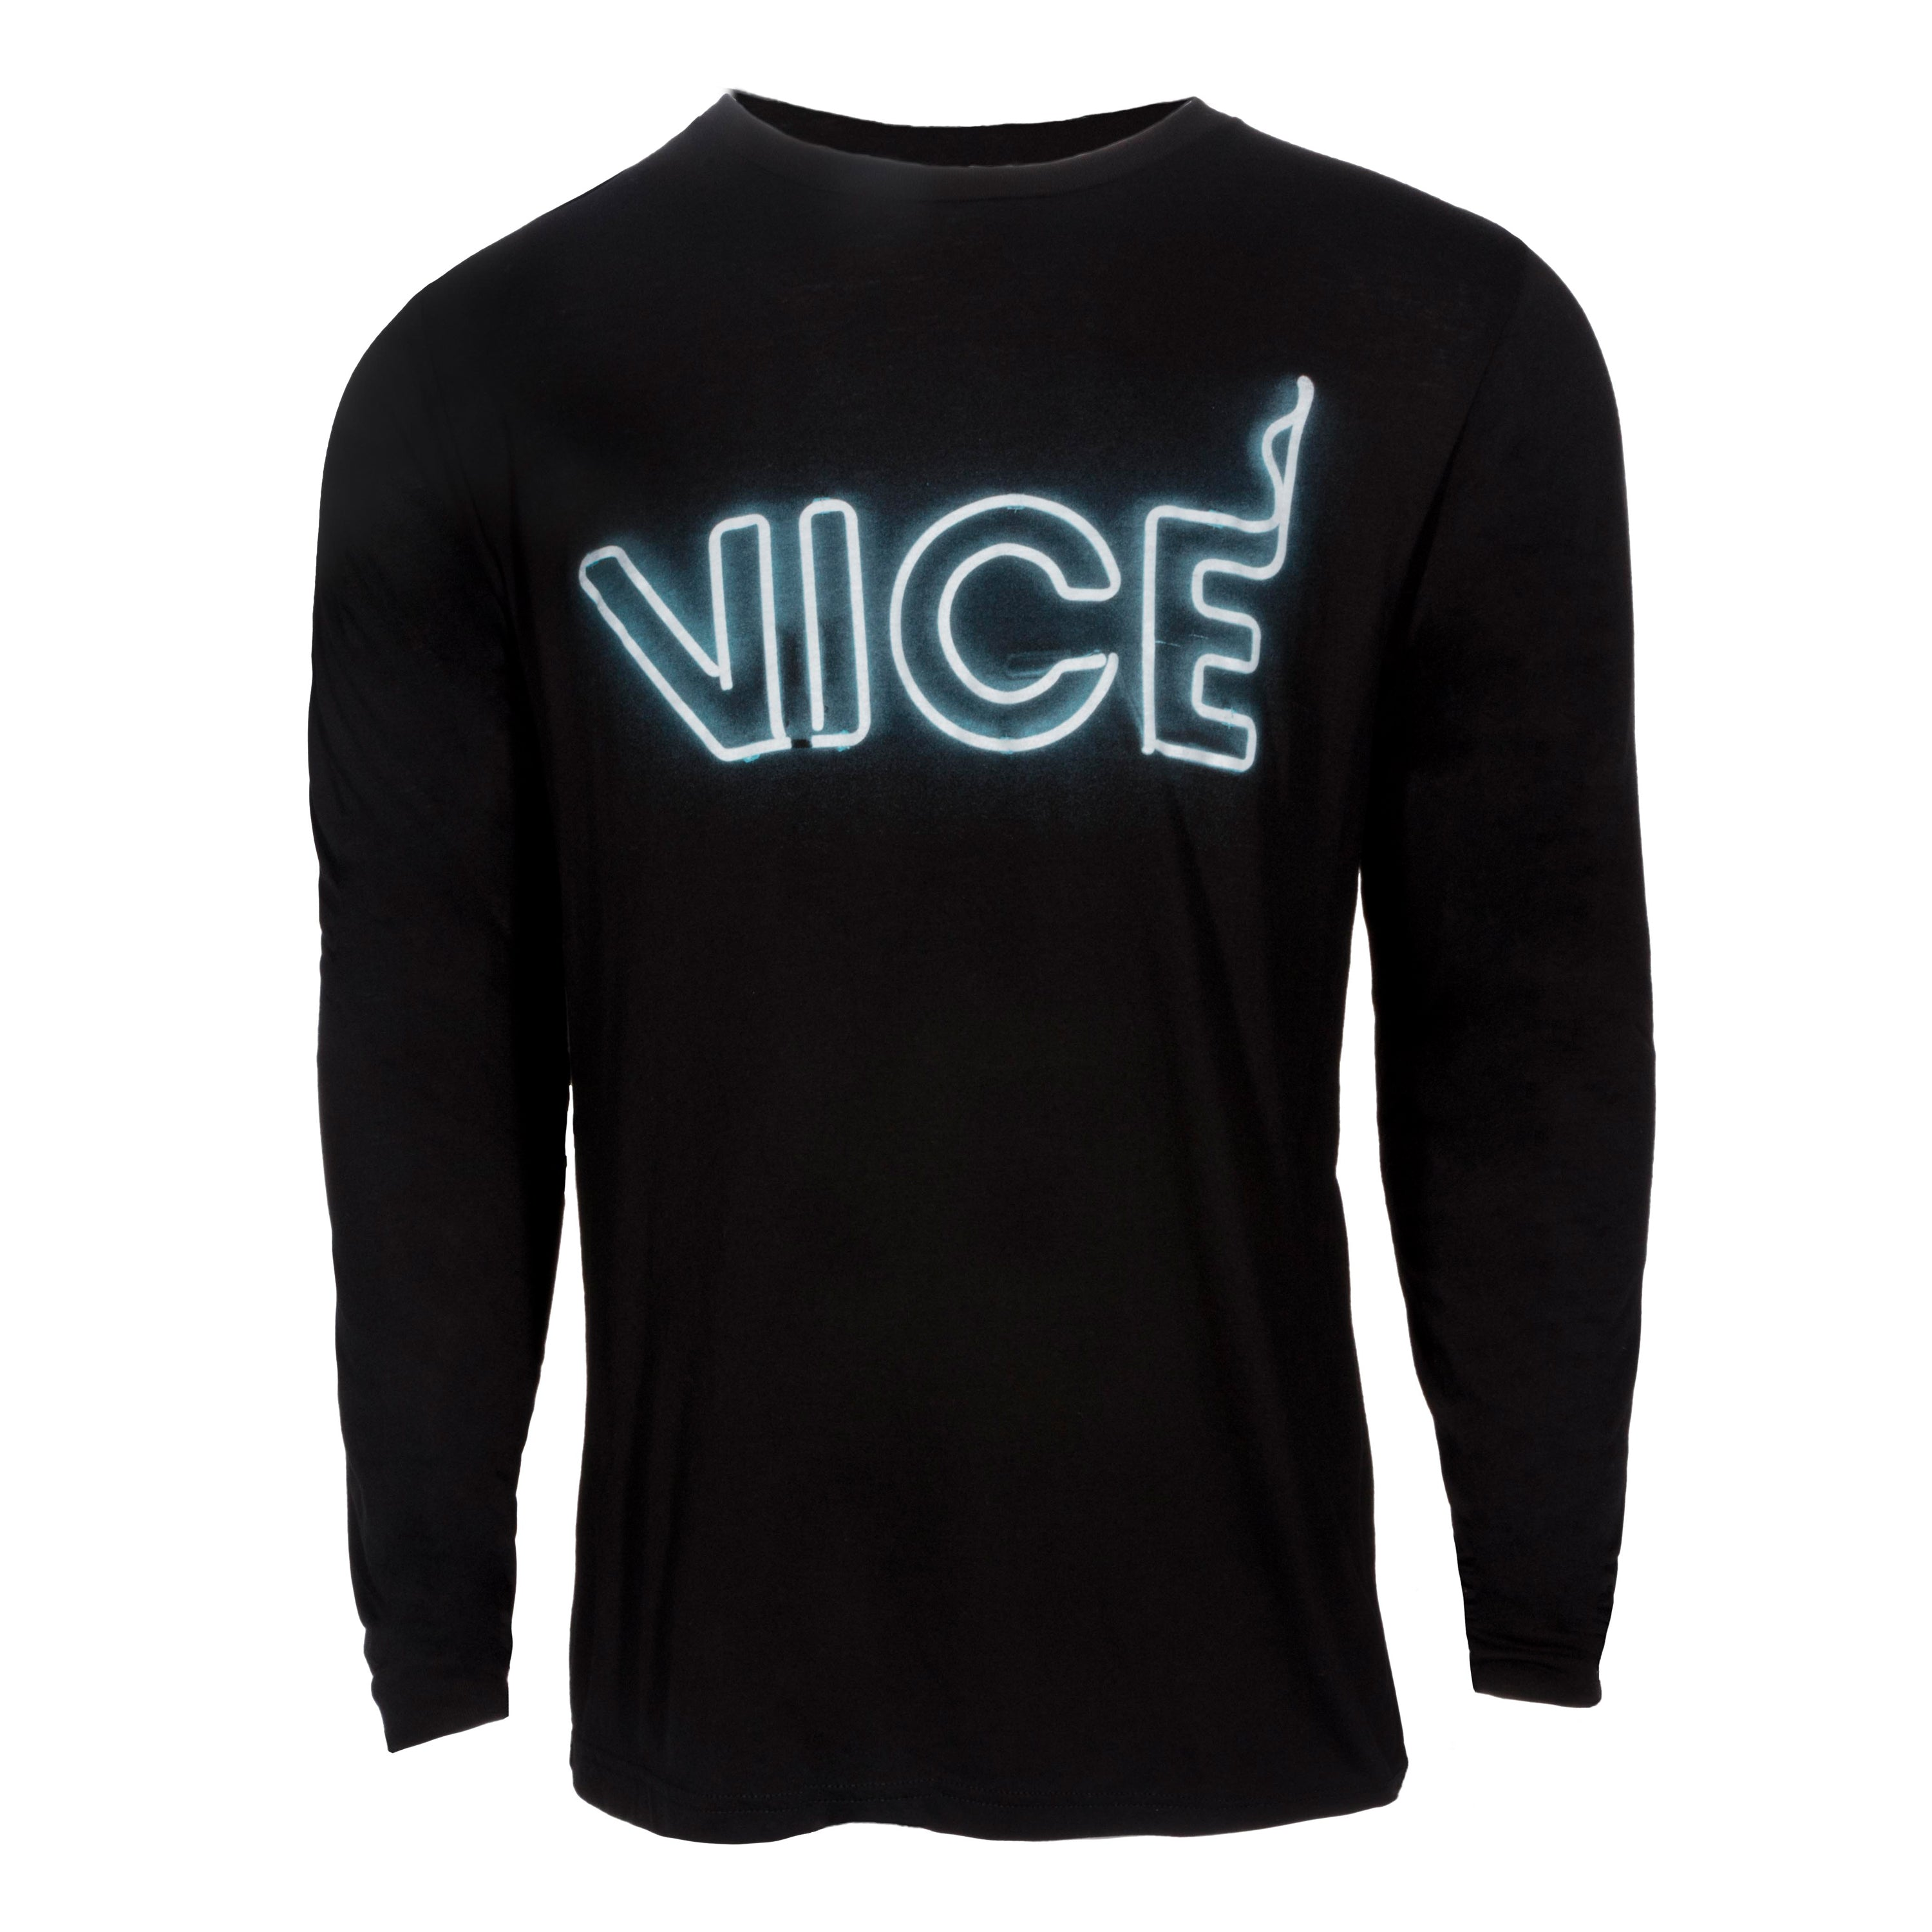 quality design 00fa6 0b97b VICE Neon Long Sleeve Tee – Miami HEAT Store